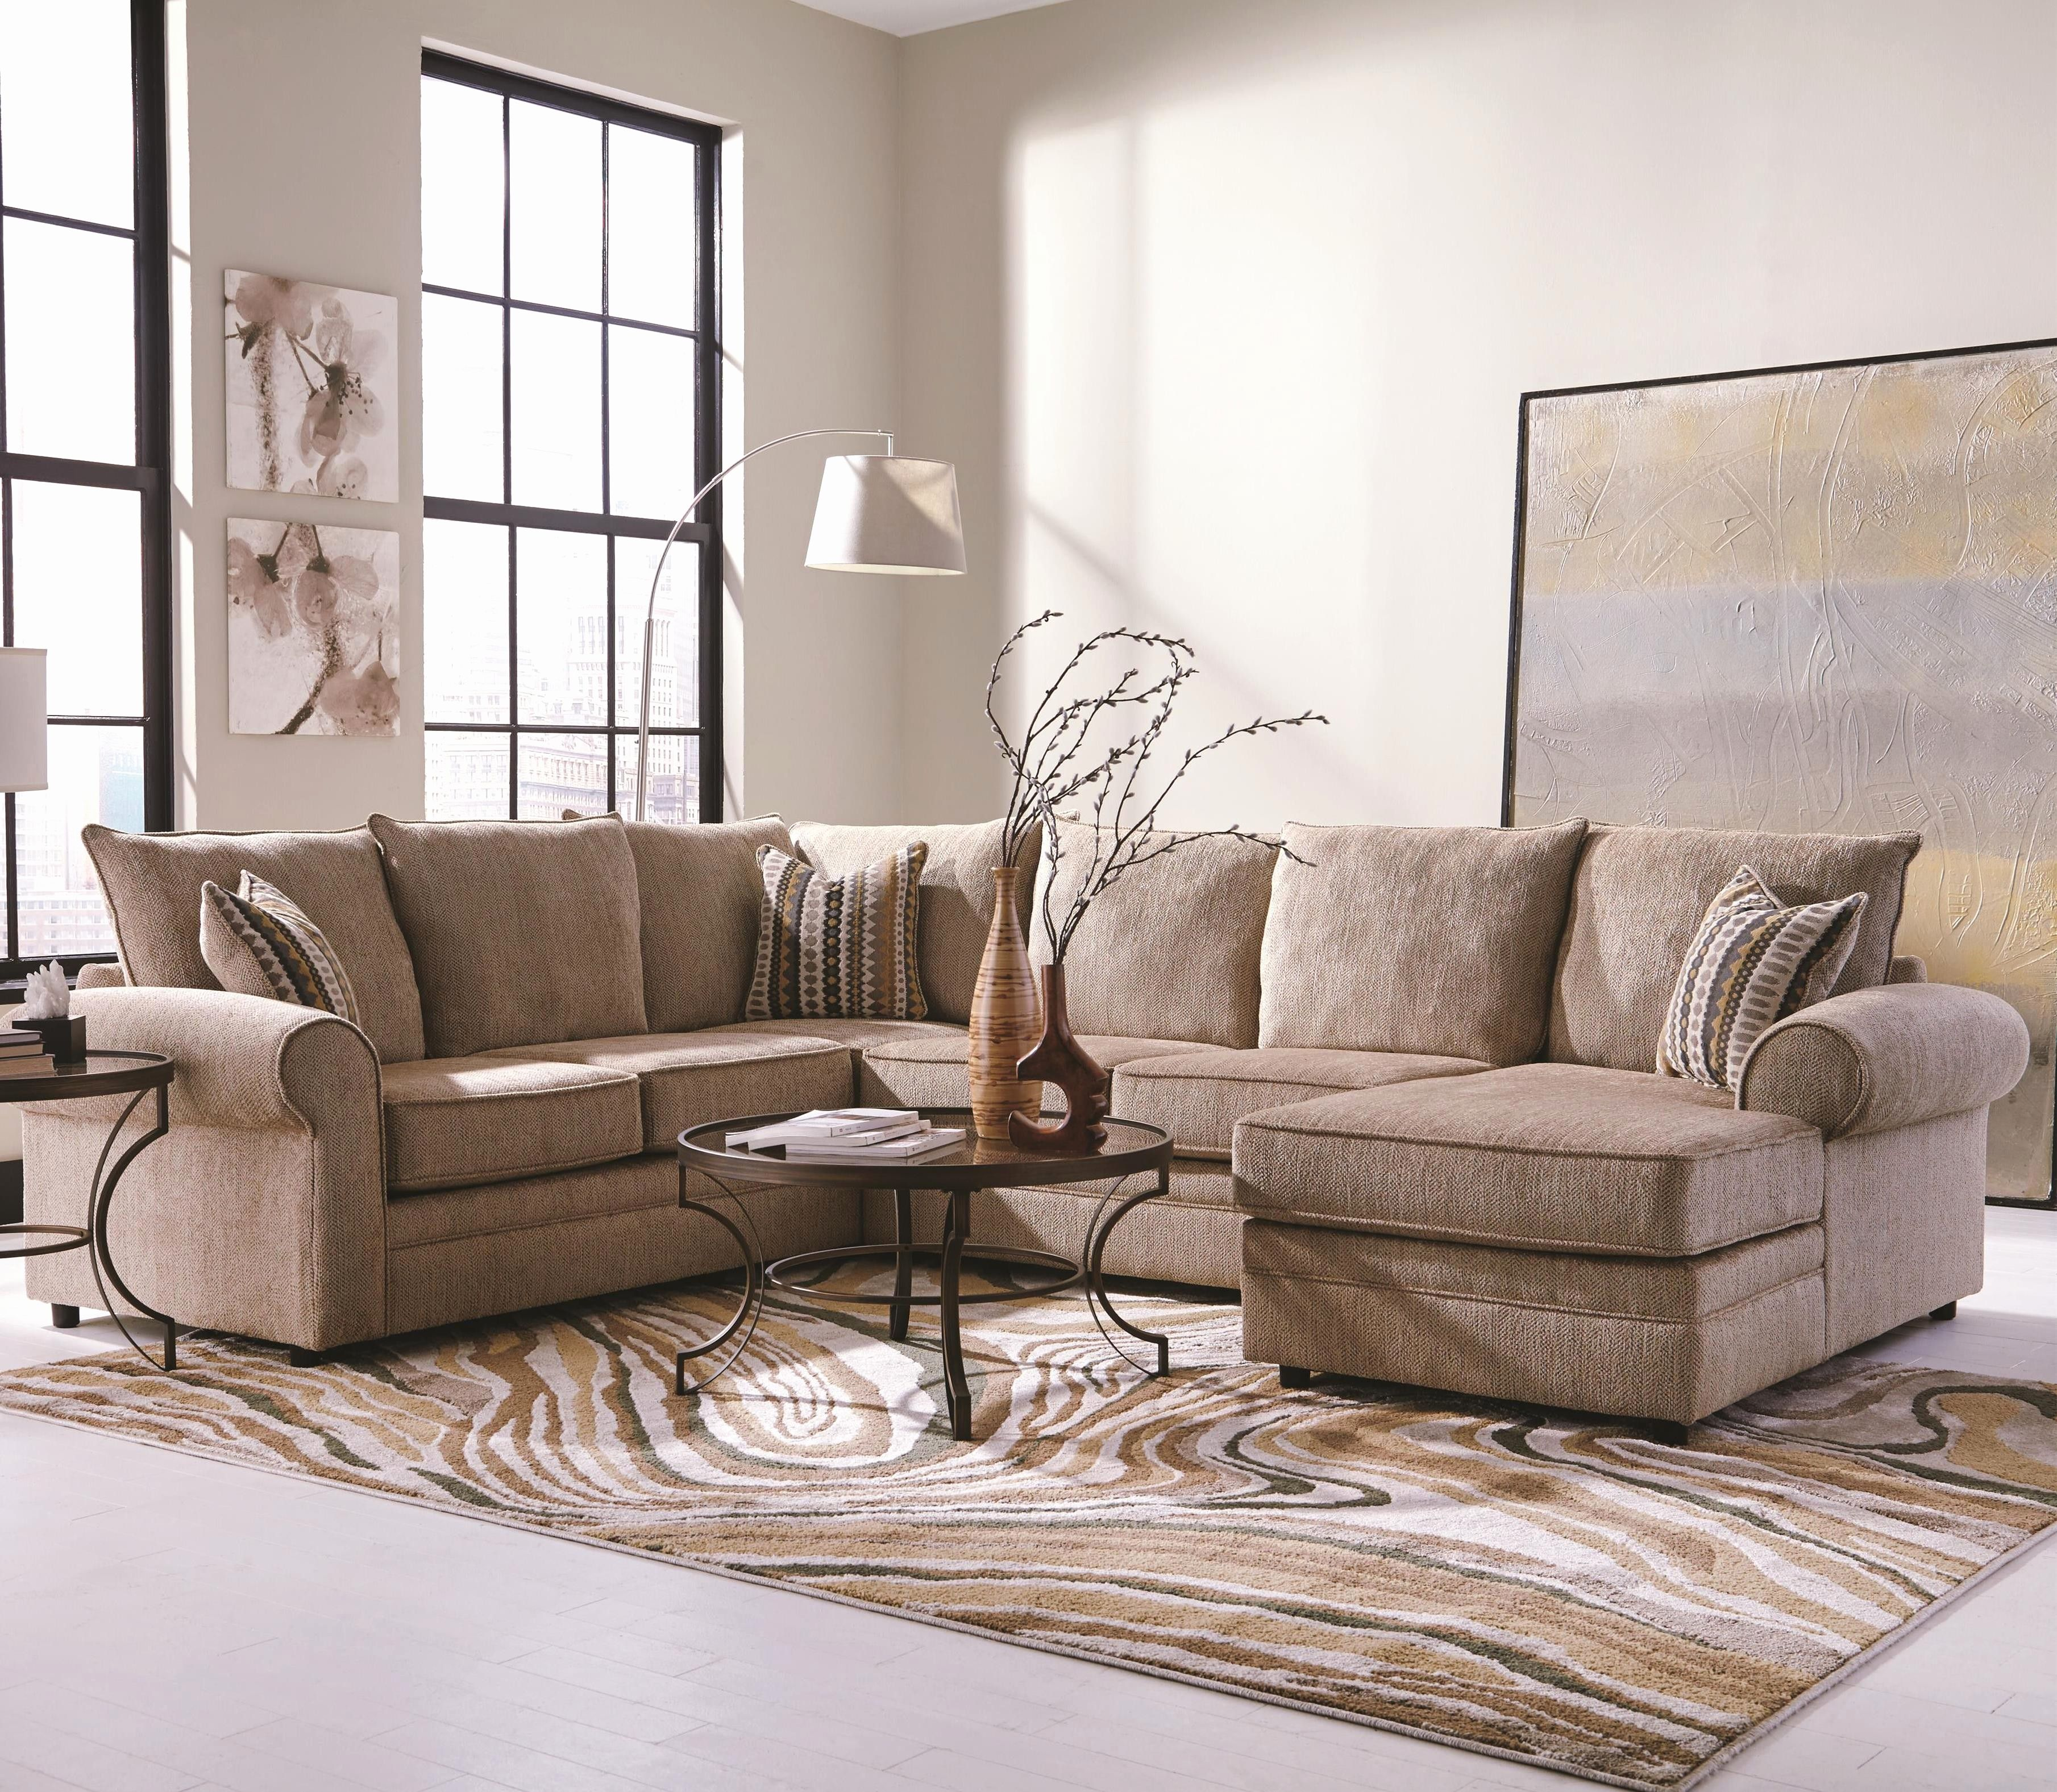 Elegant U Shaped Sectional Sofa Pictures U Shaped Sectional Sofa Elegant Coaster Fa Living Room Sets Furniture Upholstered Sectional Sectional Sofa With Chaise